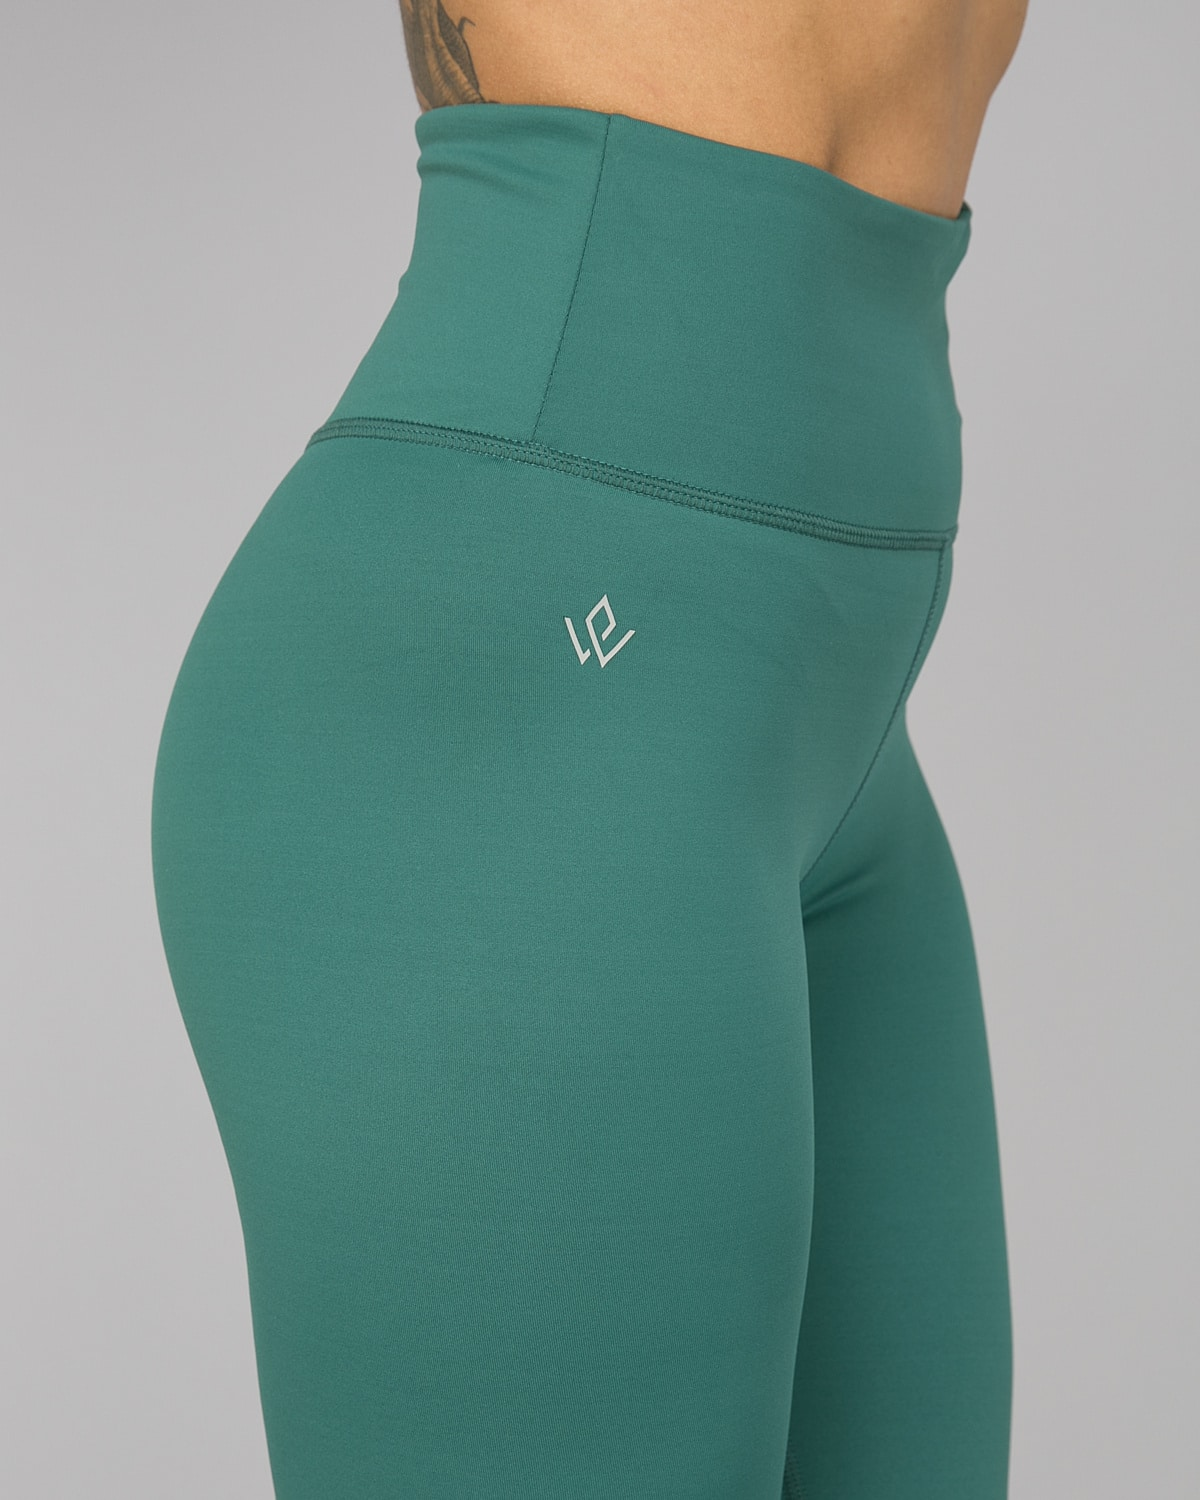 Workout Empire – With Confidence Shape Leggings – Emerald Green12